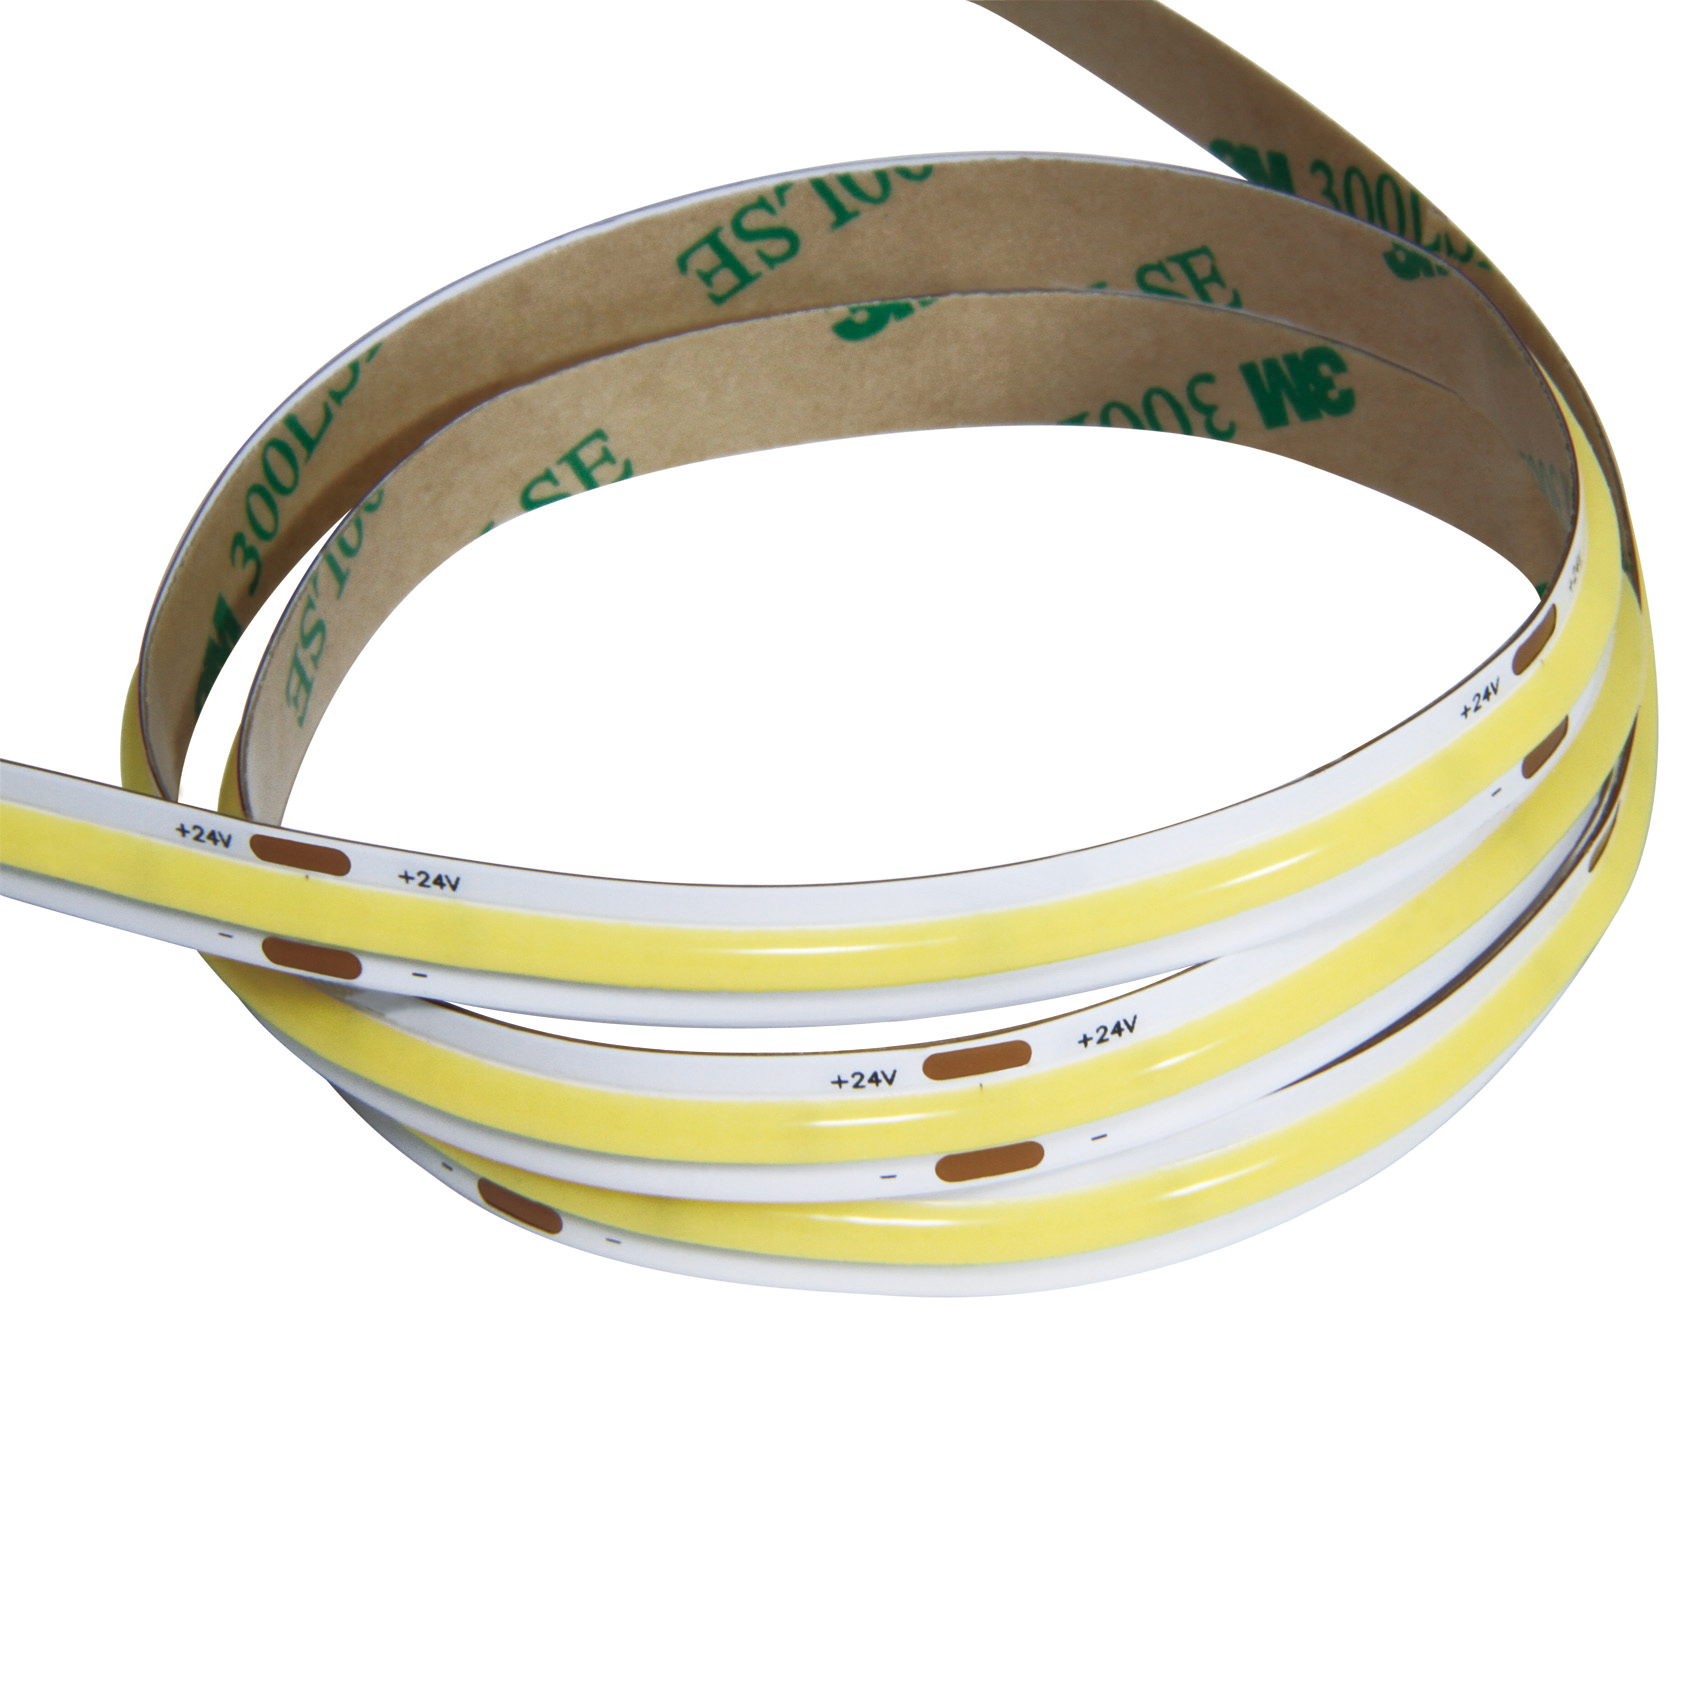 12VDC LED COB LED Strip Light Waterproof IP67 without Dots